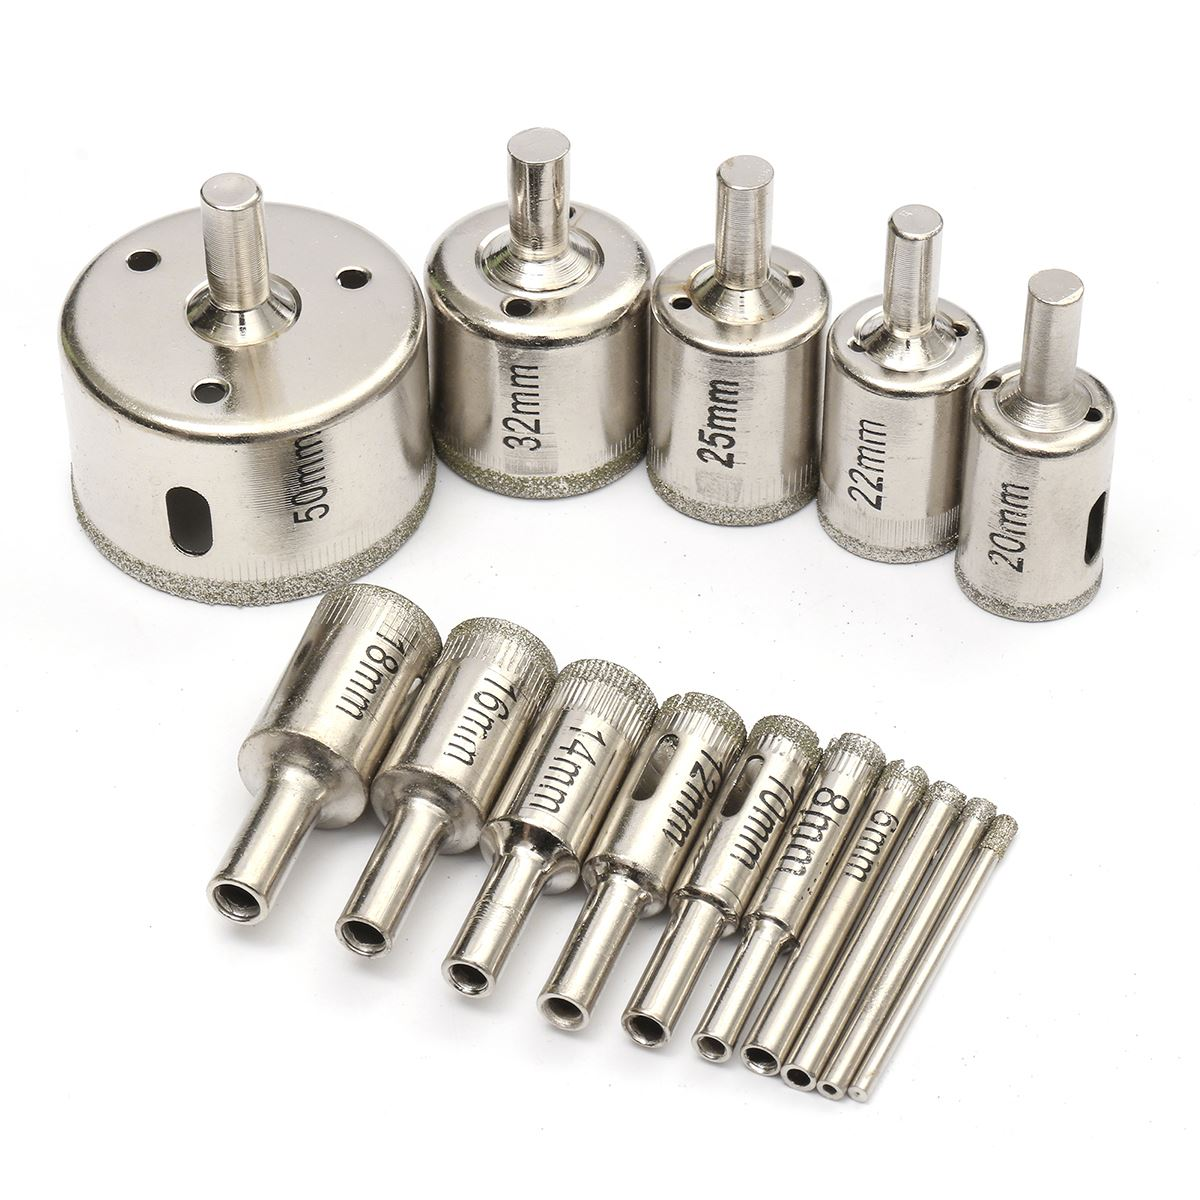 15pcs/set 3mm-50mm Diamond Drill Bit Holes Saw Alloy Silver Cutter Tool For Glass Marble Durable Quality(China (Mainland))